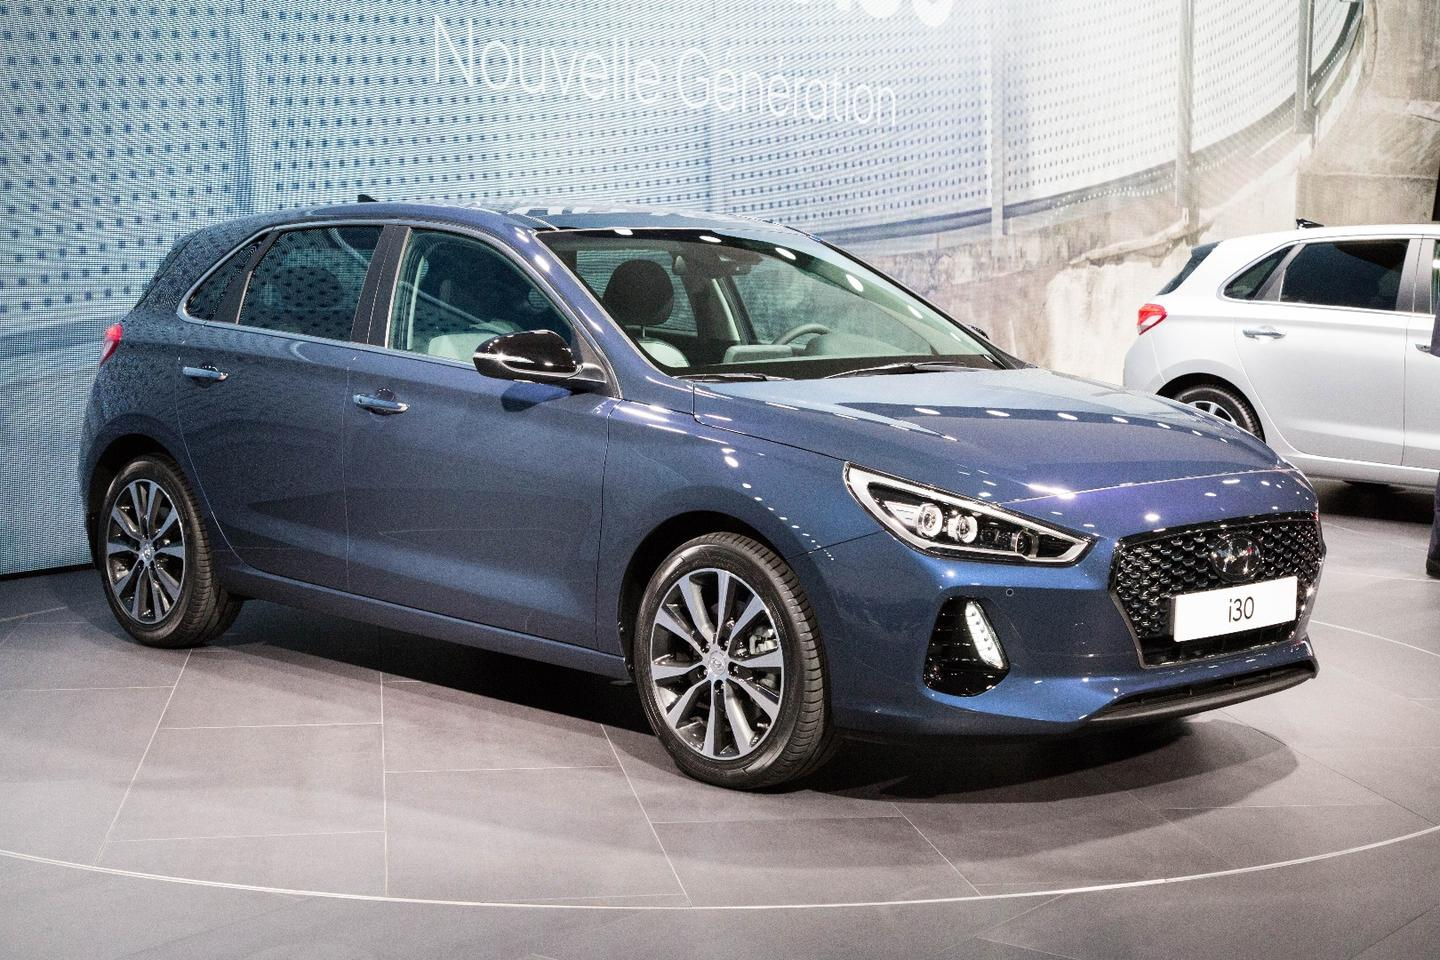 The new Hyundai i30 proves Korean cars can mix it with the best Europe can offer